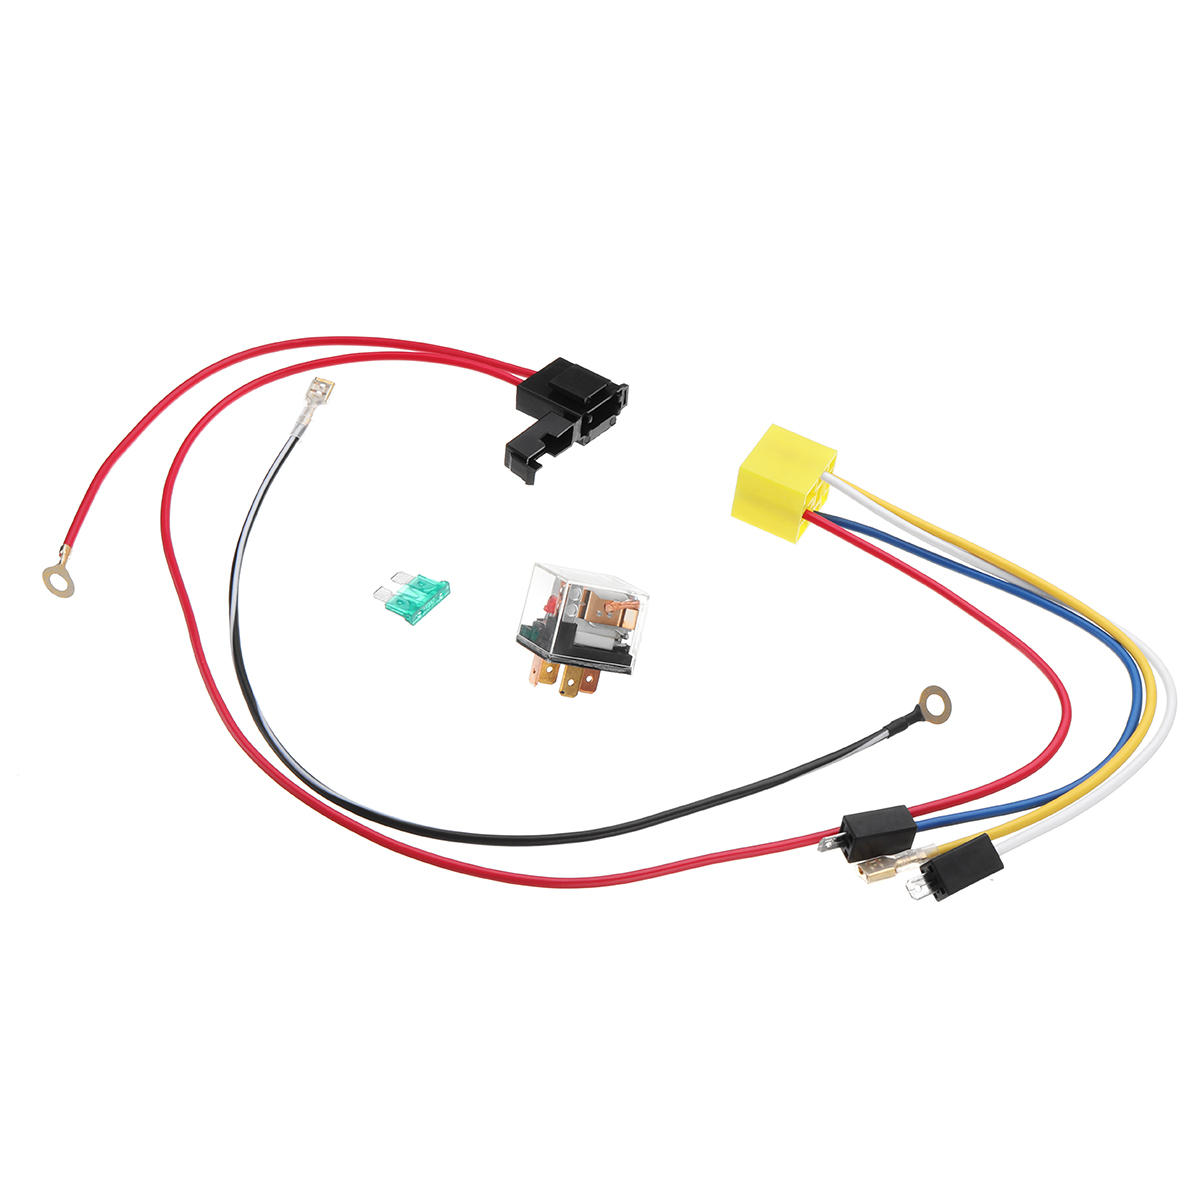 Astonishing 12V Dual Tone Electric Air Horn Wiring Harness Relay For Car Truck Wiring Digital Resources Funapmognl